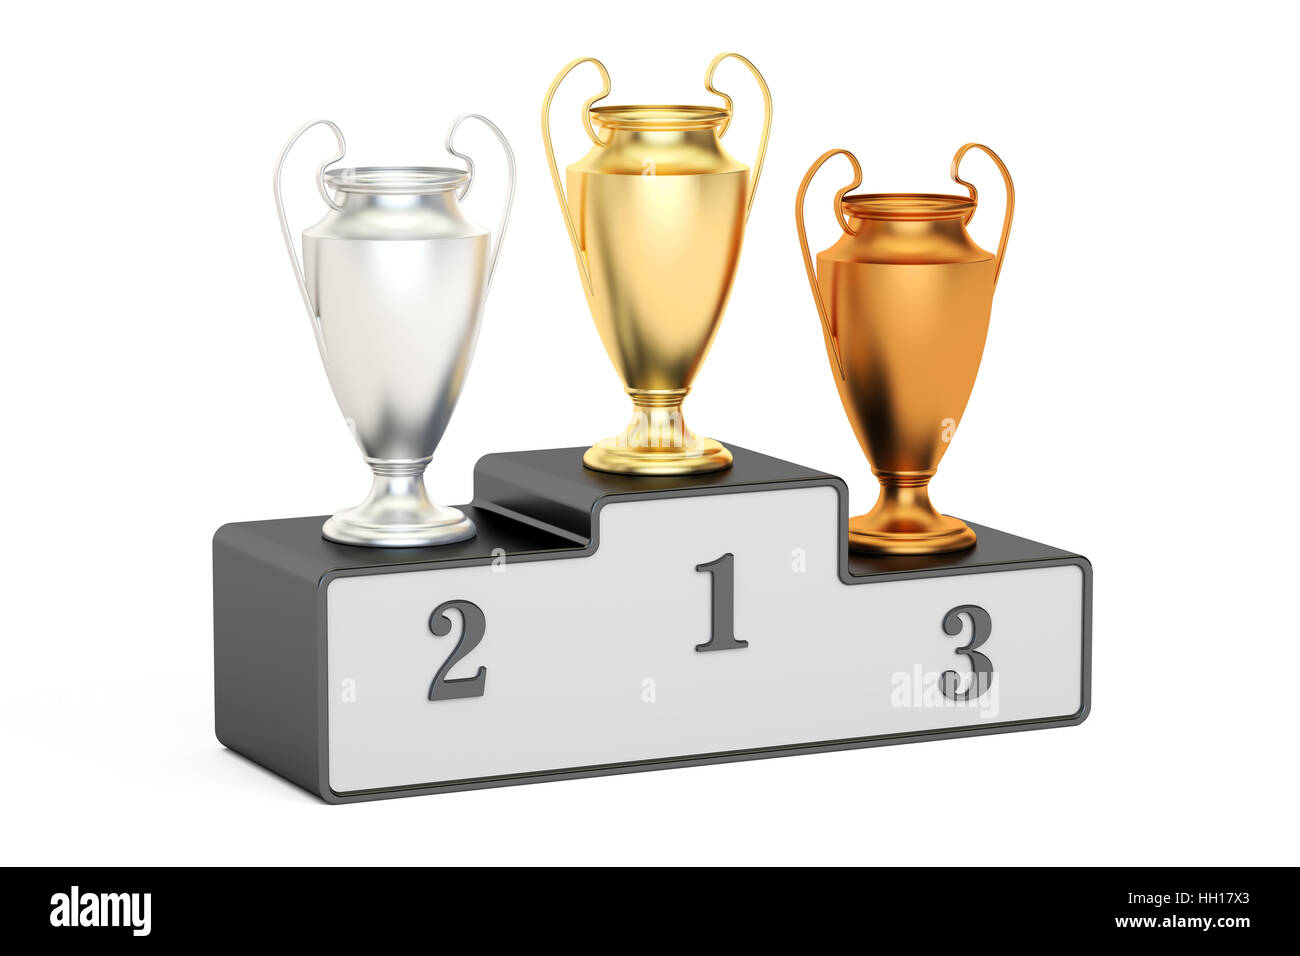 Golden, silver and bronze trophy cups on black pedestal, 3D rendering isolated on white background - Stock Image